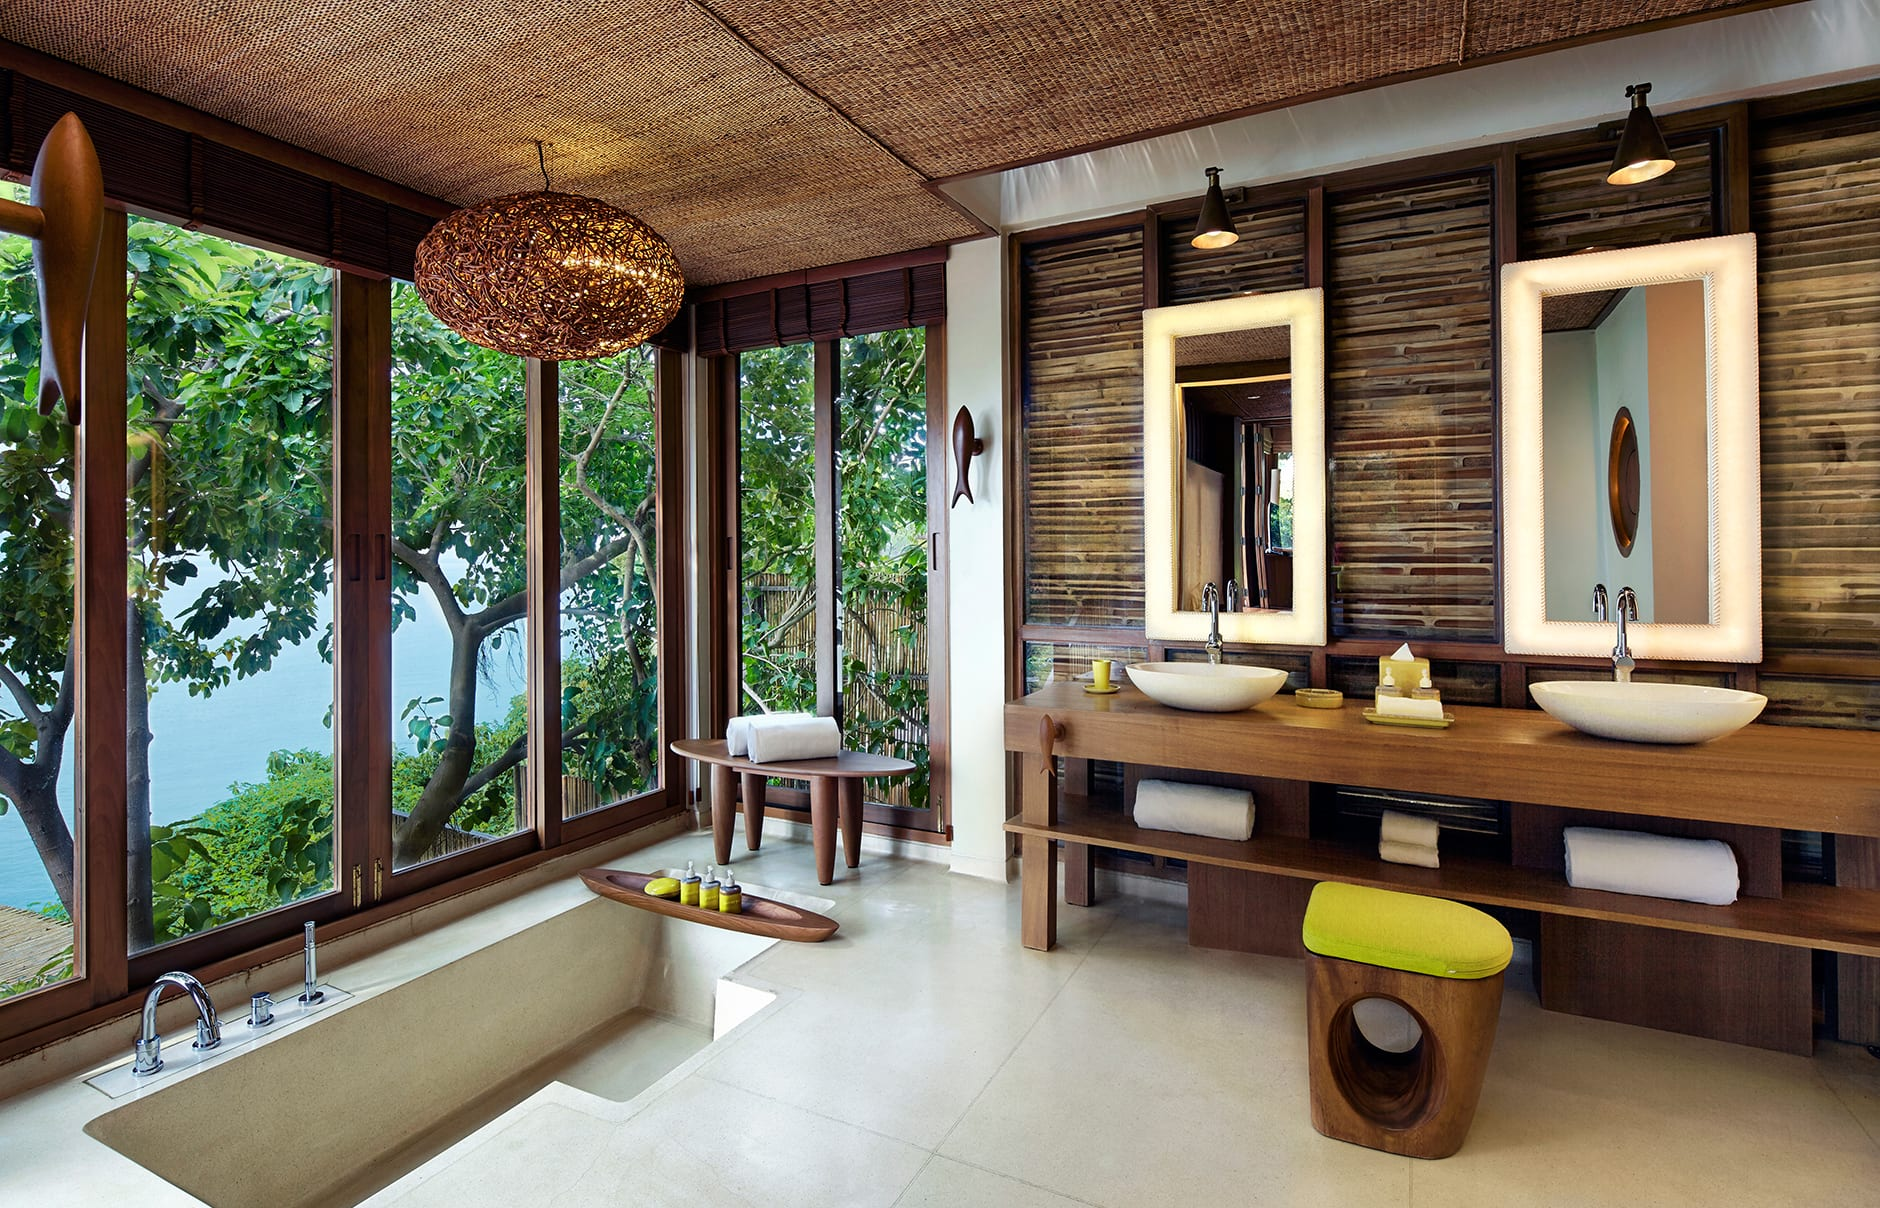 Ocean Front Pool Villa bathroom. Six Senses Samui, Thailand. © Six Senses Resorts & Spas